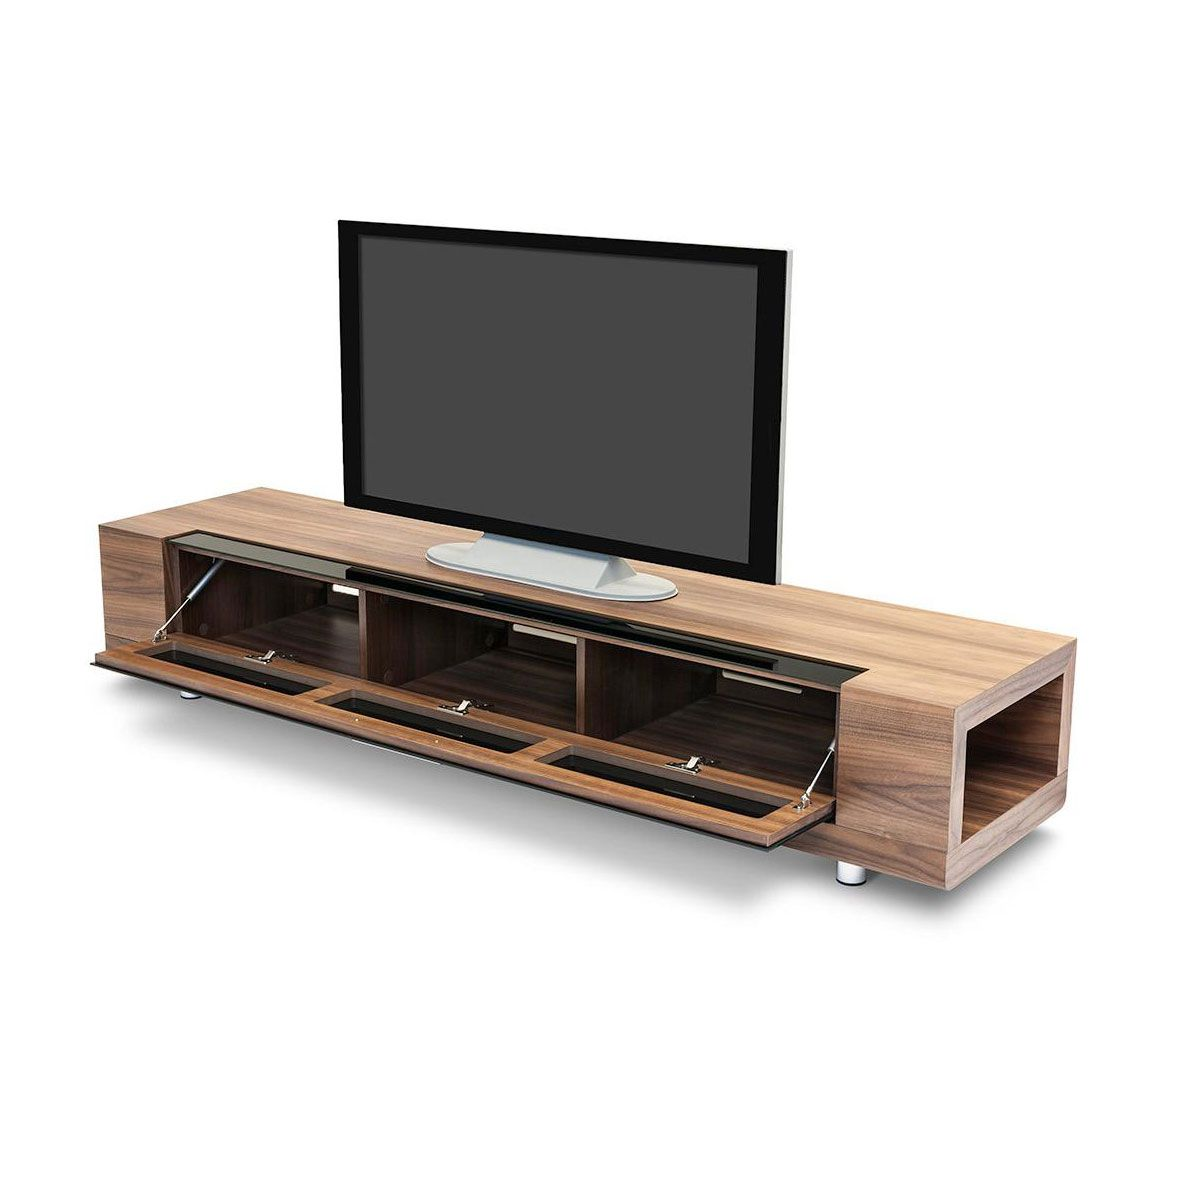 The Tube Modern Tv Stand Dotandbo Com For The Home Tv